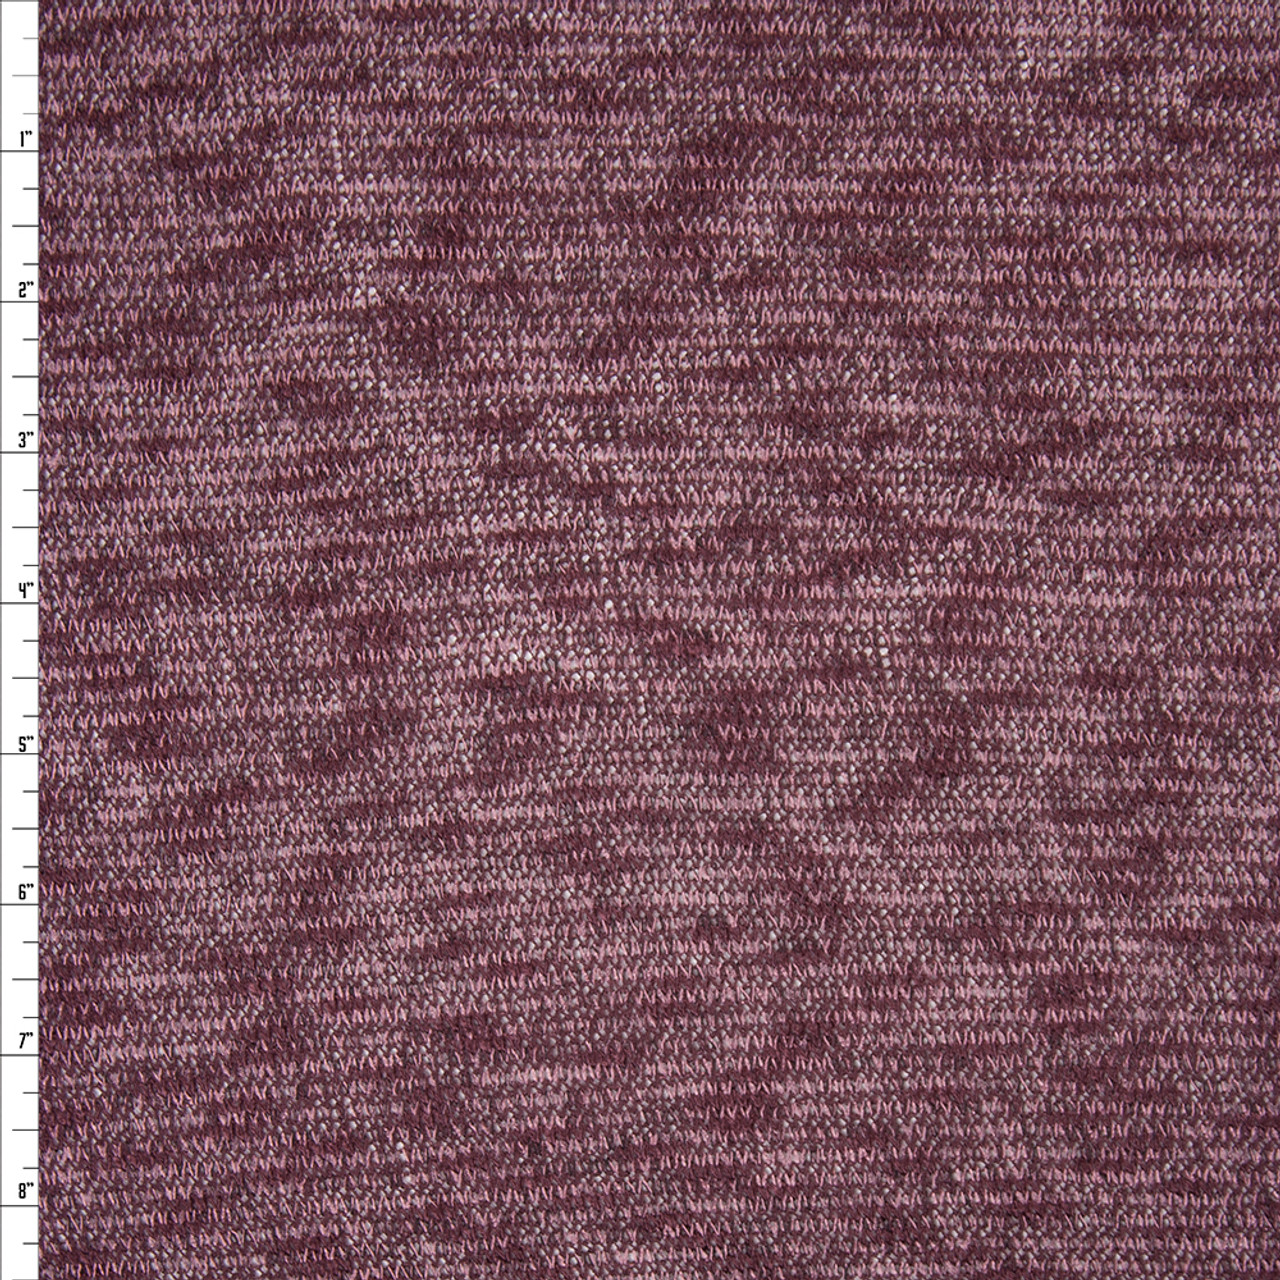 9f55dcdc5ec ... Plum and Lilac Mottled Lines Lightweight Stretch Sweater Knit Fabric By  The Yard - Wide shot